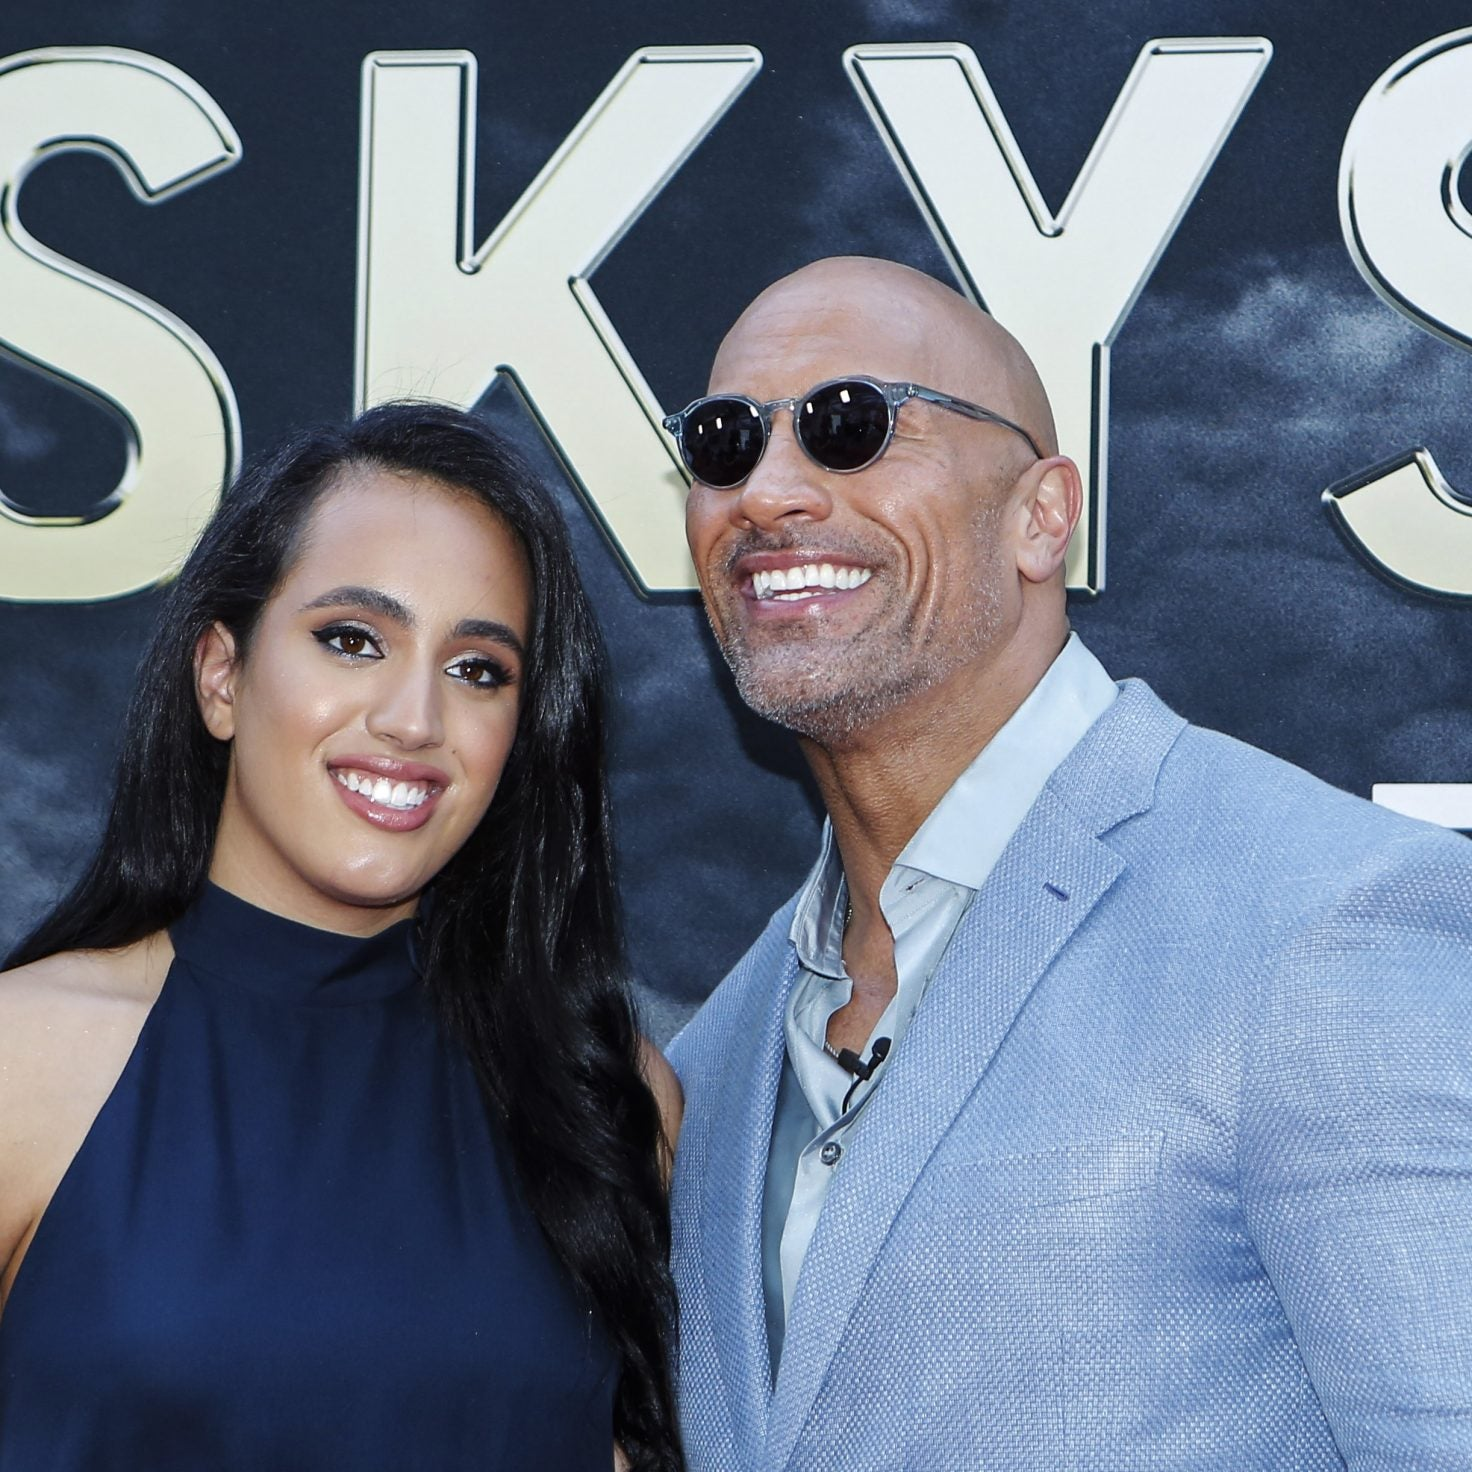 Dwayne 'The Rock' Johnson Says He's 'So Proud' Of Daughter Simone Signing With The WWE